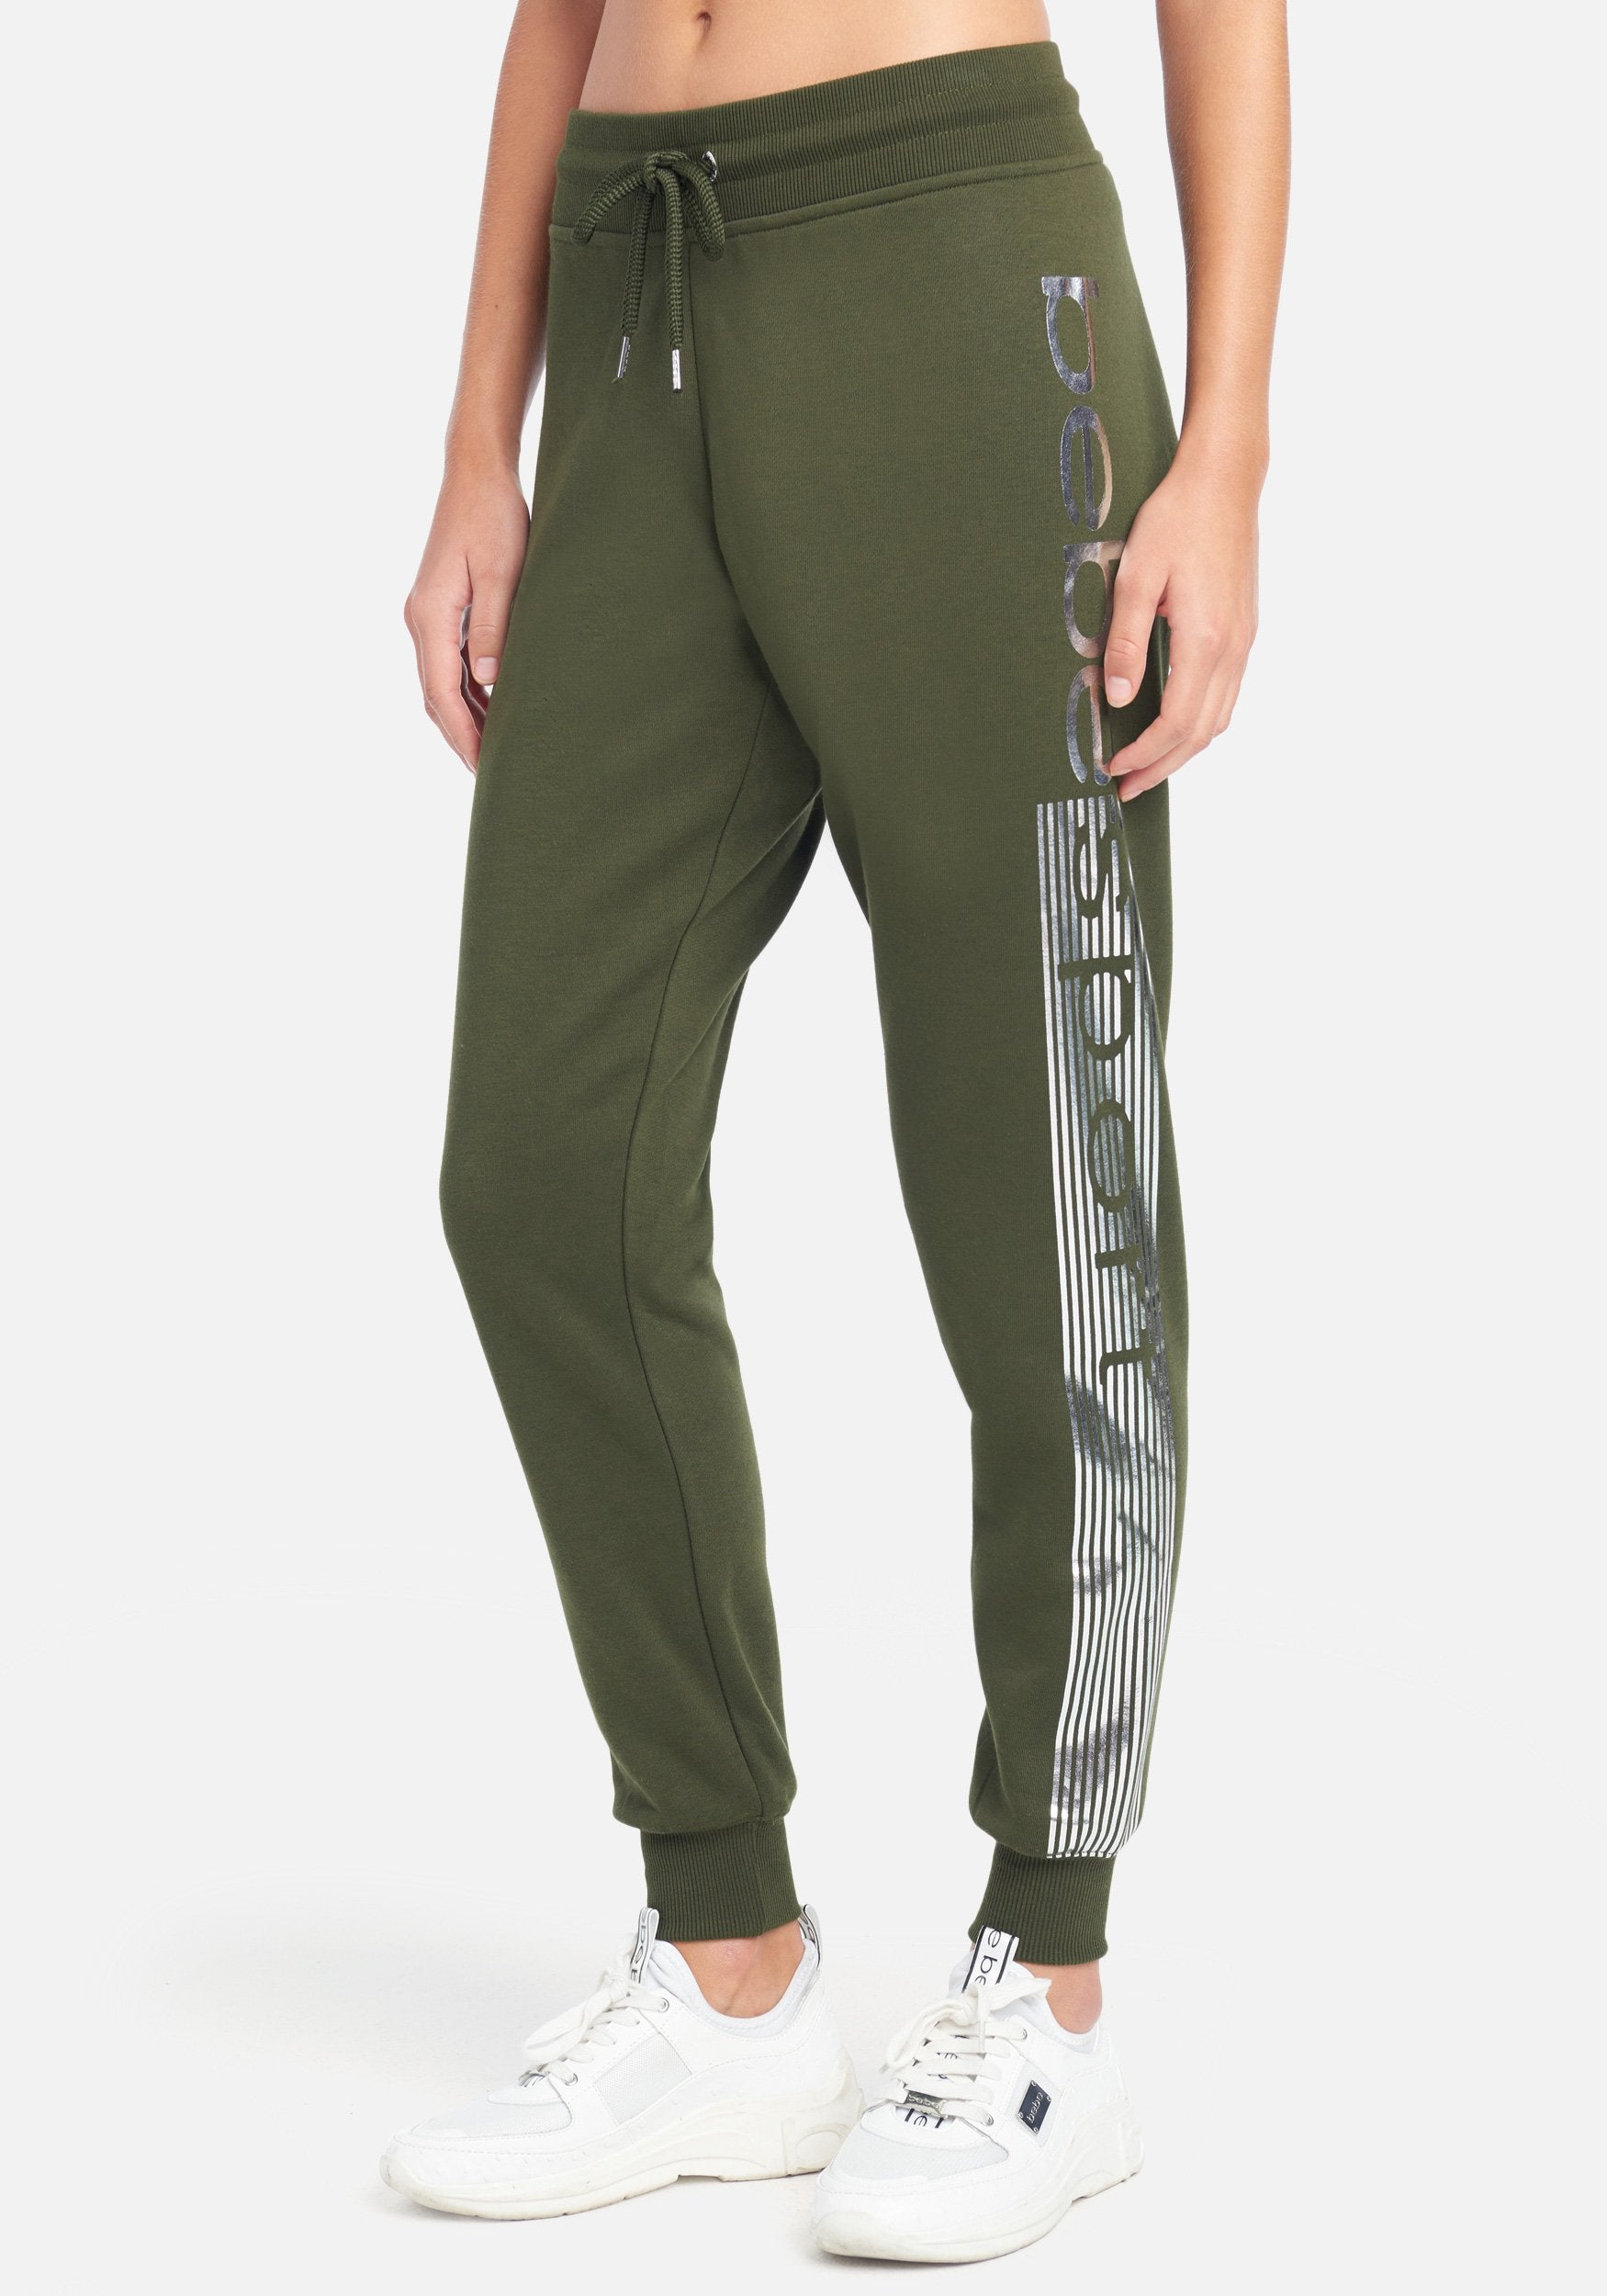 Women's Bebe Sport Stripe Jogger Pant, Size Small in Forest Cotton